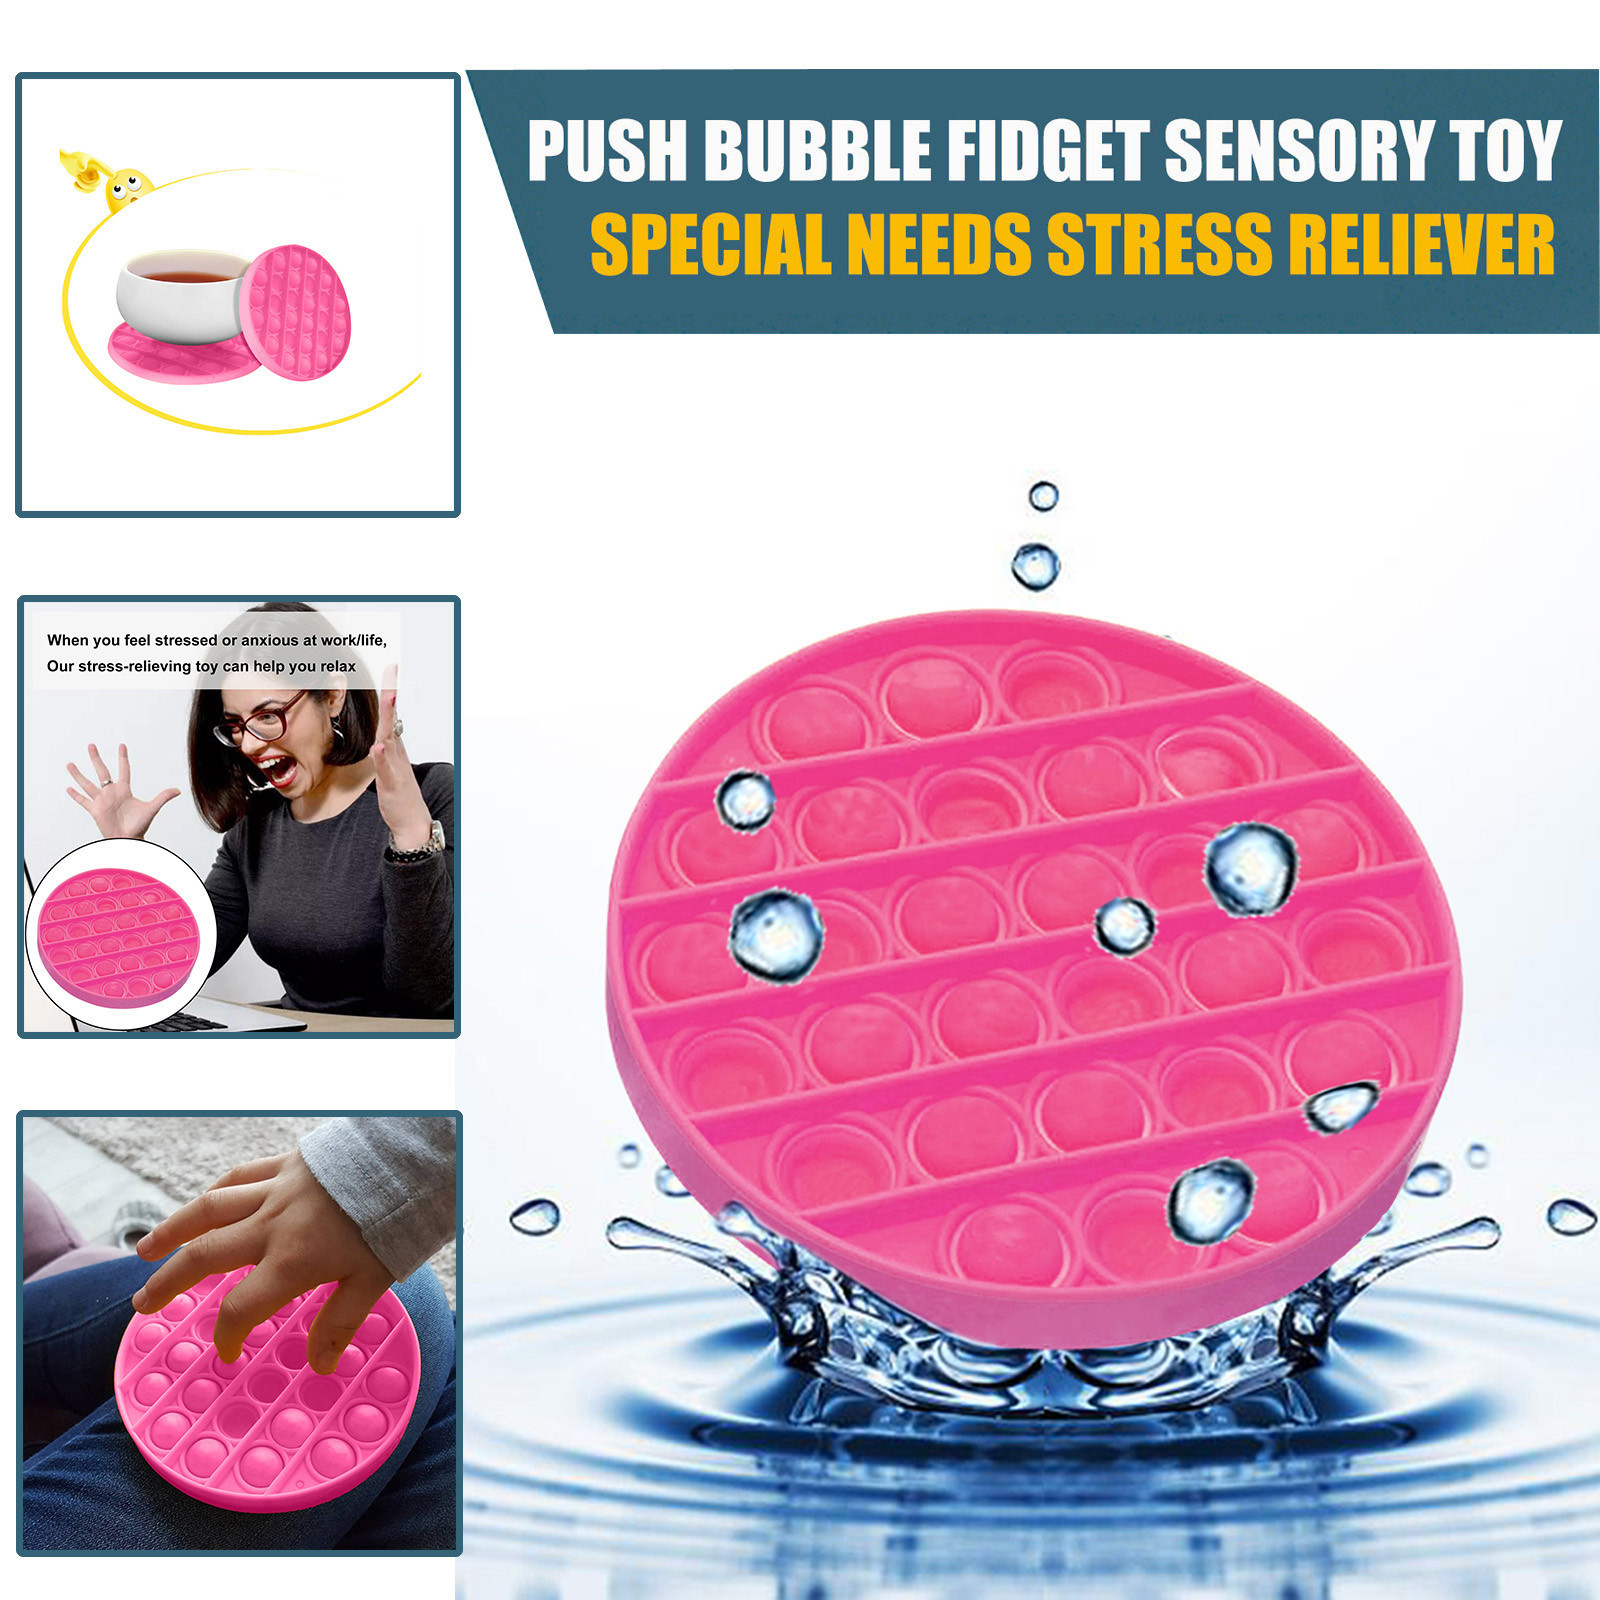 Figet Toys Squeeze-Toy Needs-Stress Push Bubble POPS Squishy Reliever Special Adult Children img5